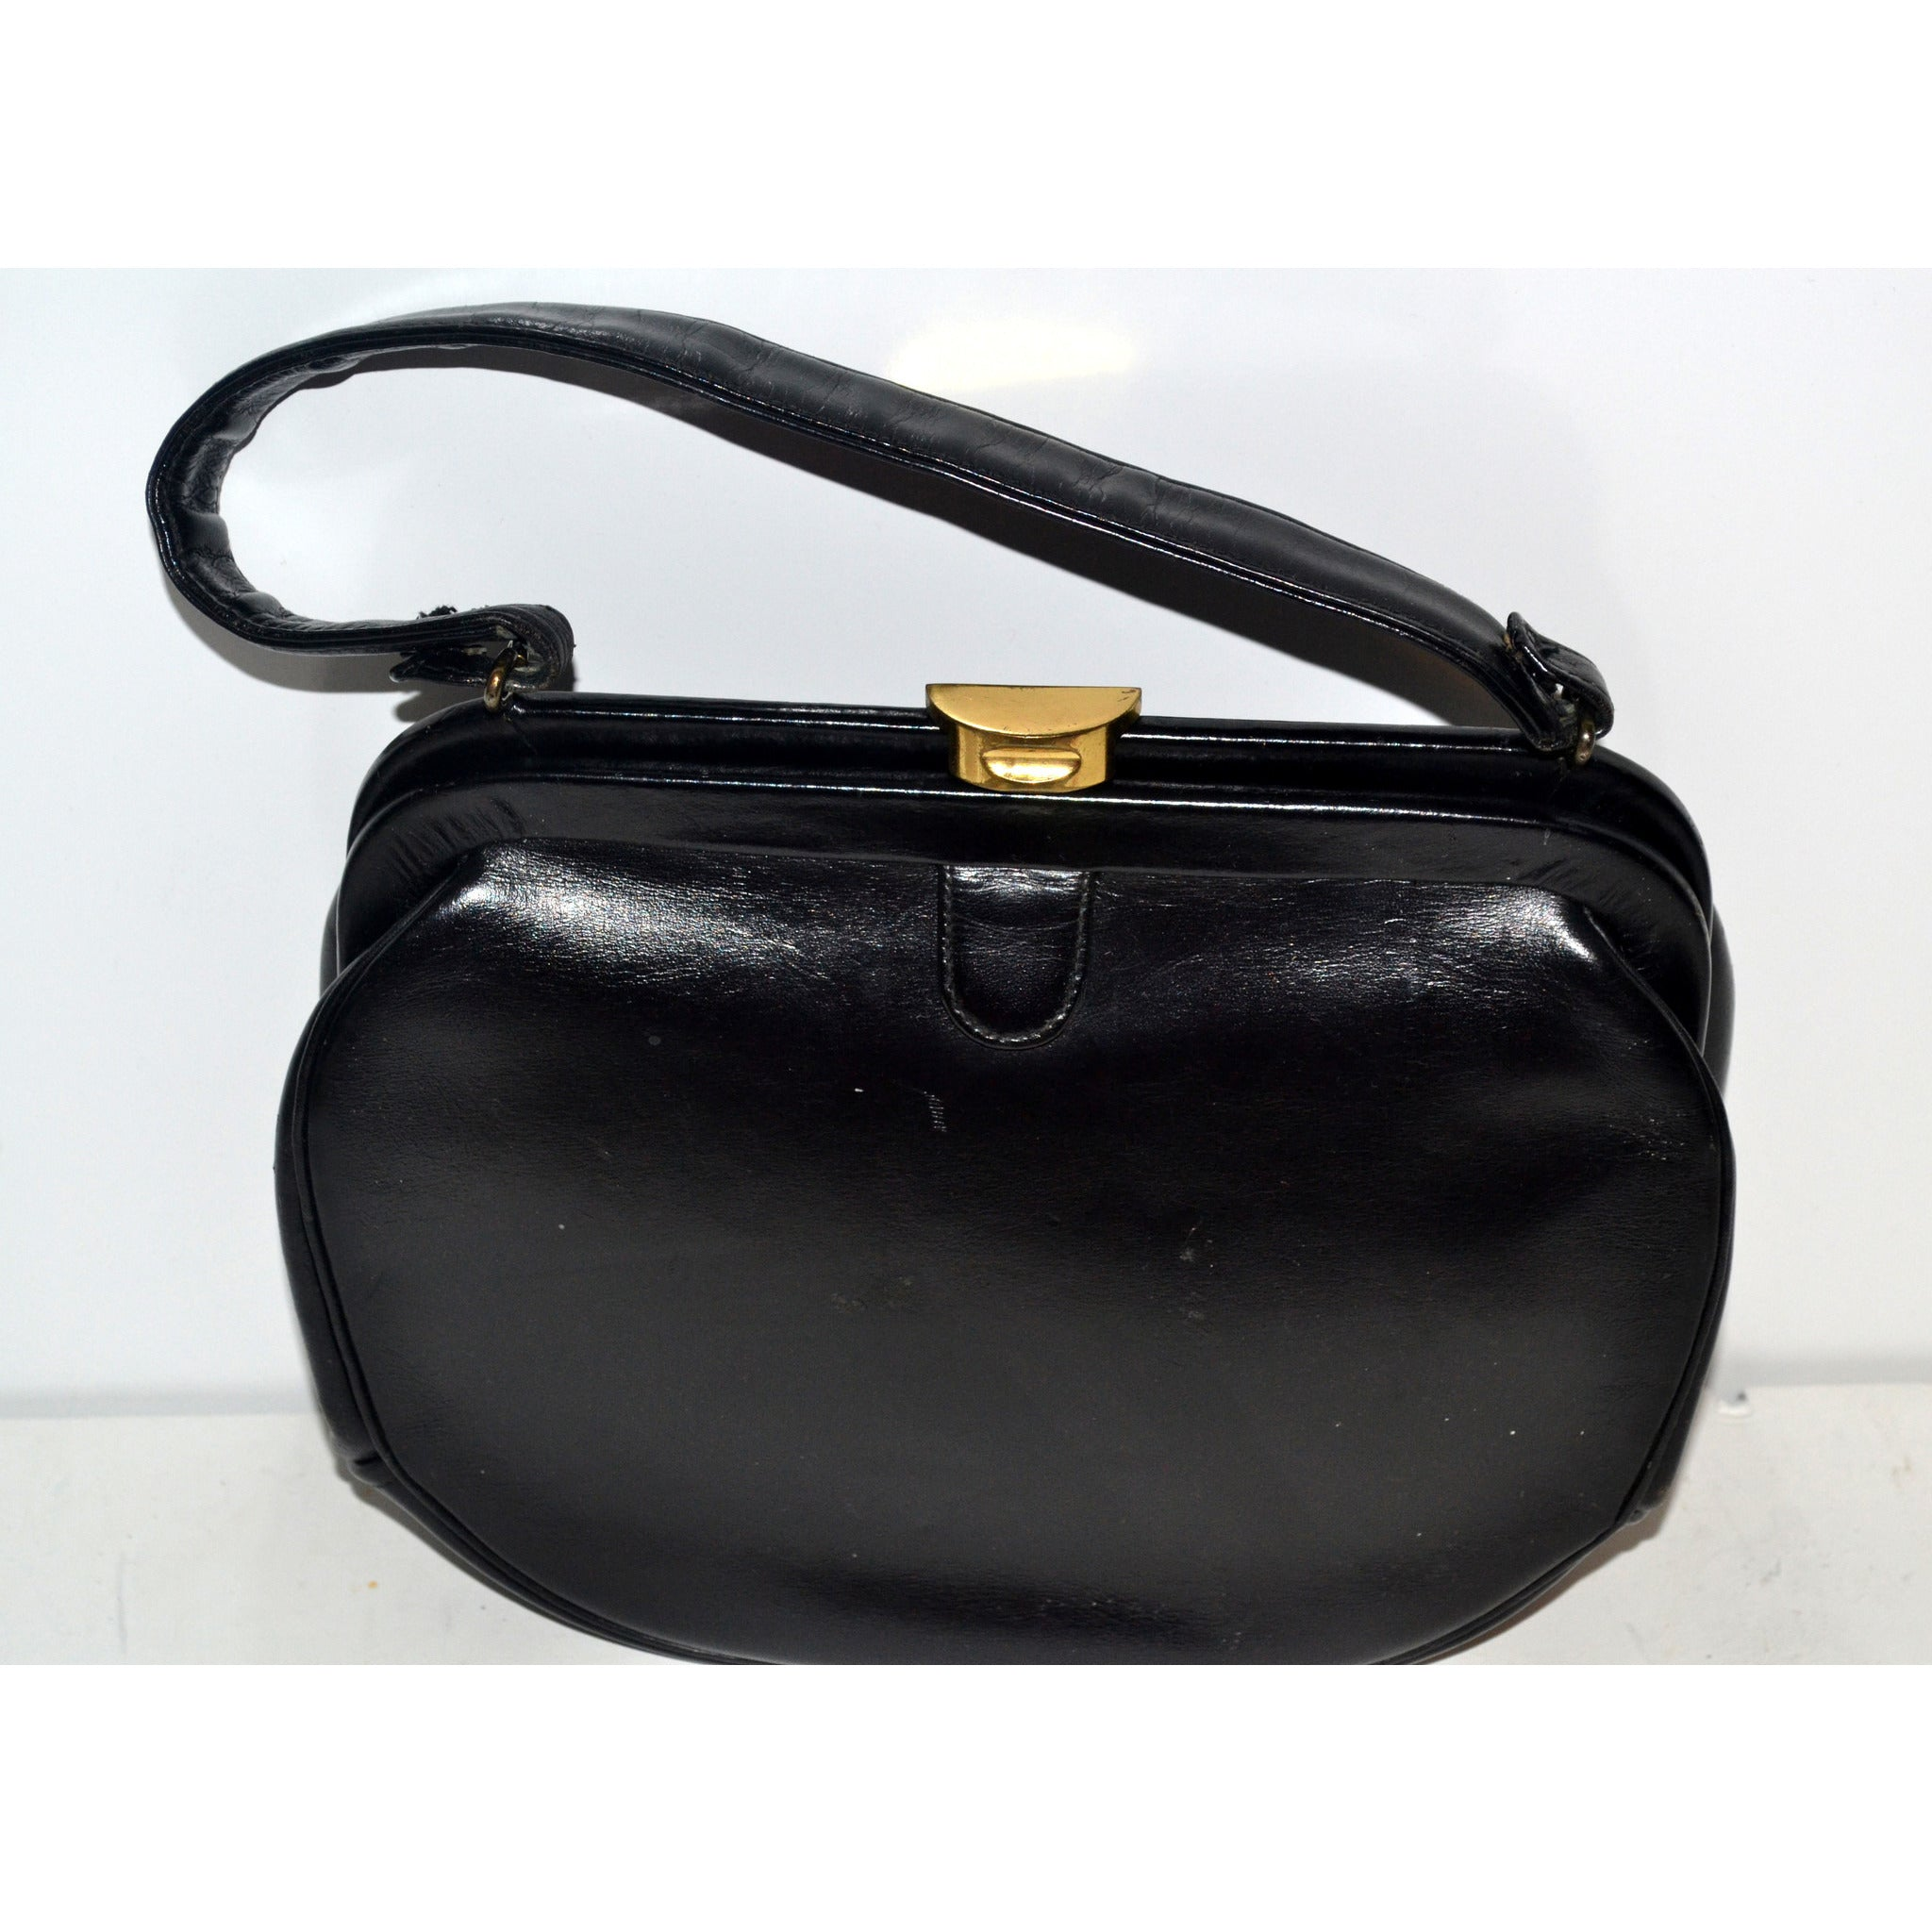 Vintage Black Leather Handbag Purse By Elite